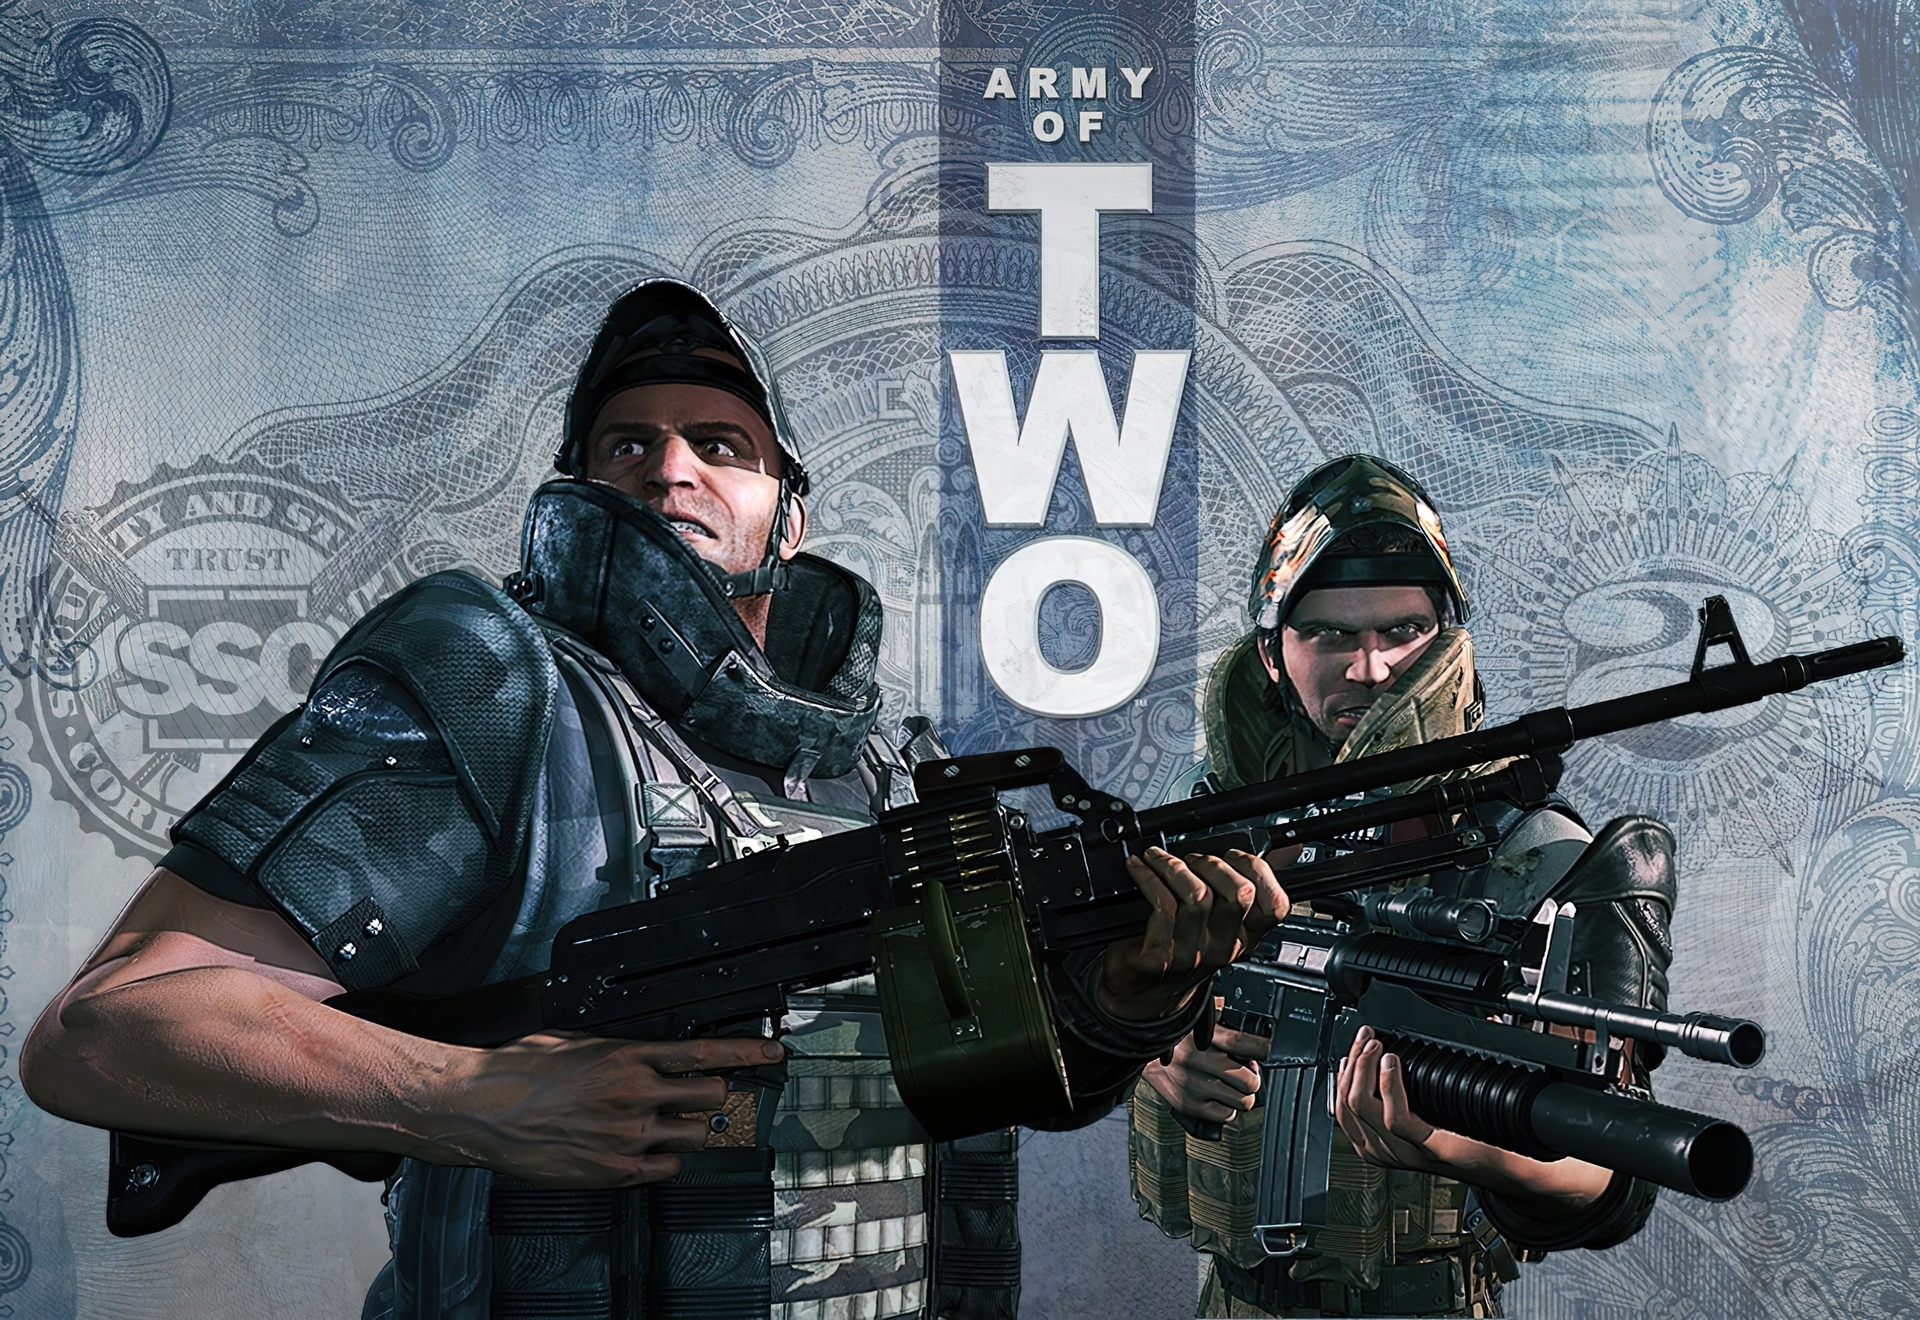 Army Of Two, Karabin